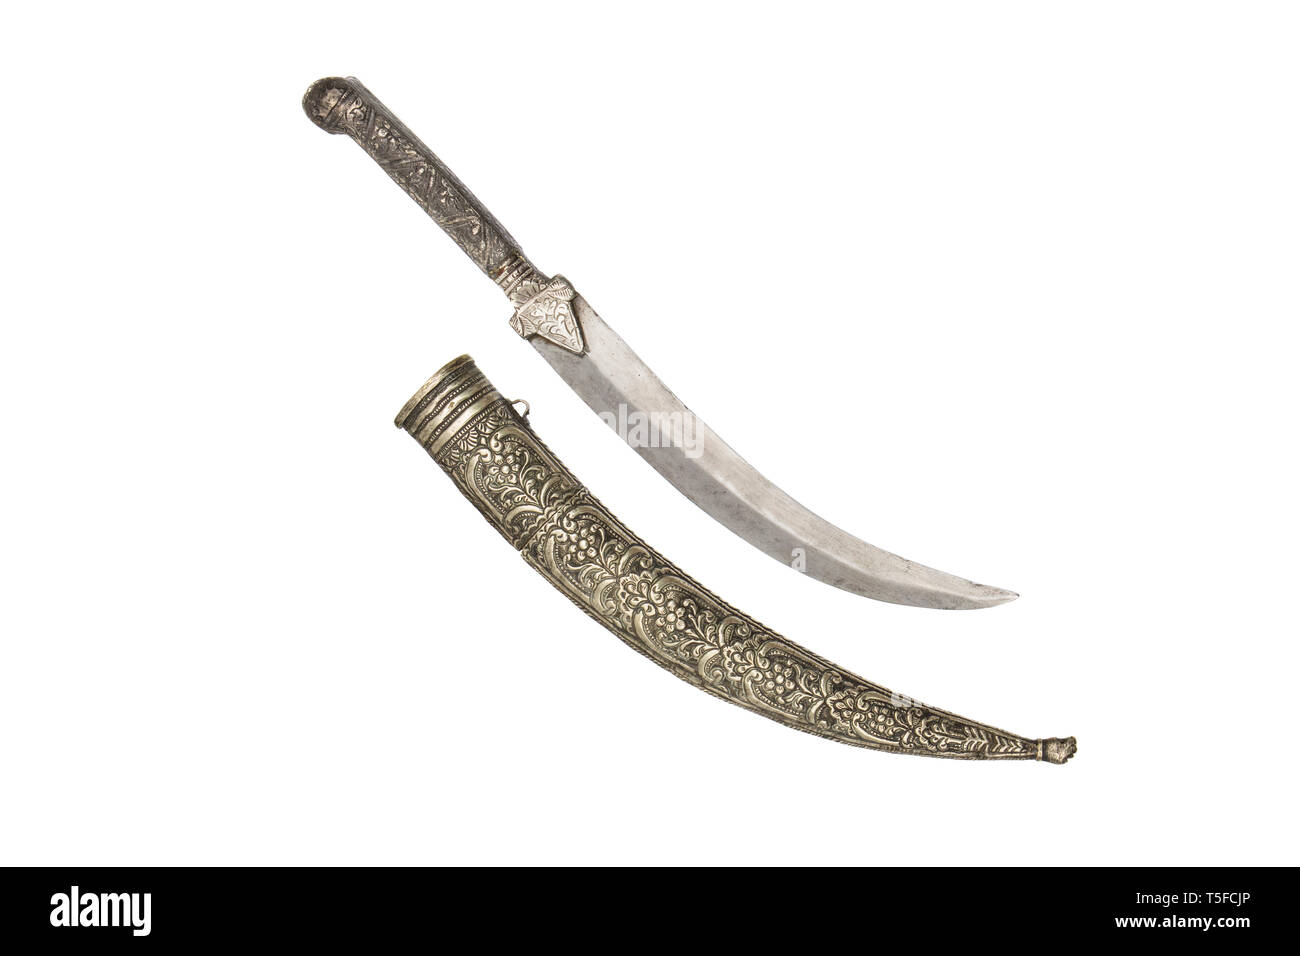 The 19th century Greek dagger with curved double edged pointy blade of flattened diamond shape. - Stock Image